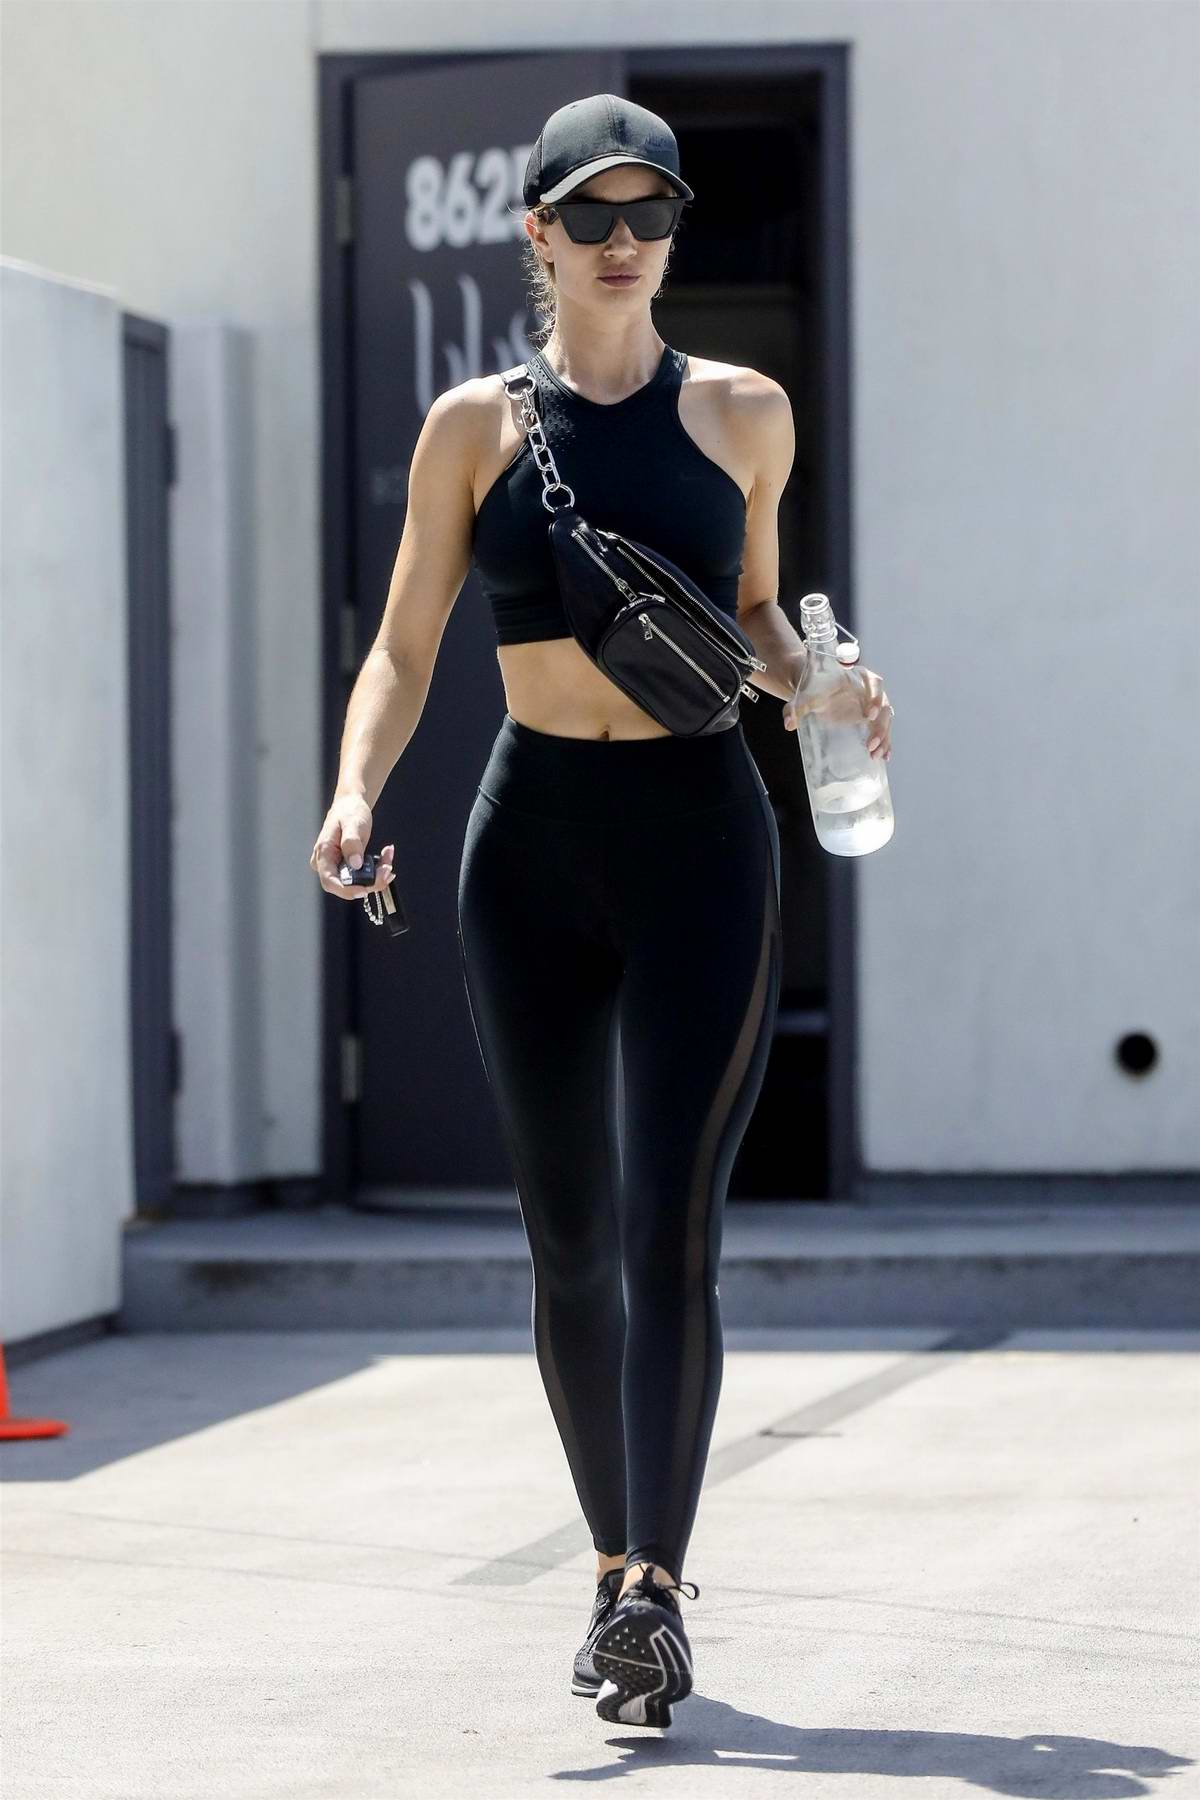 Rosie Huntington-Whiteley looks radiant as she leaves Body by Simone after a workout session in Los Angeles